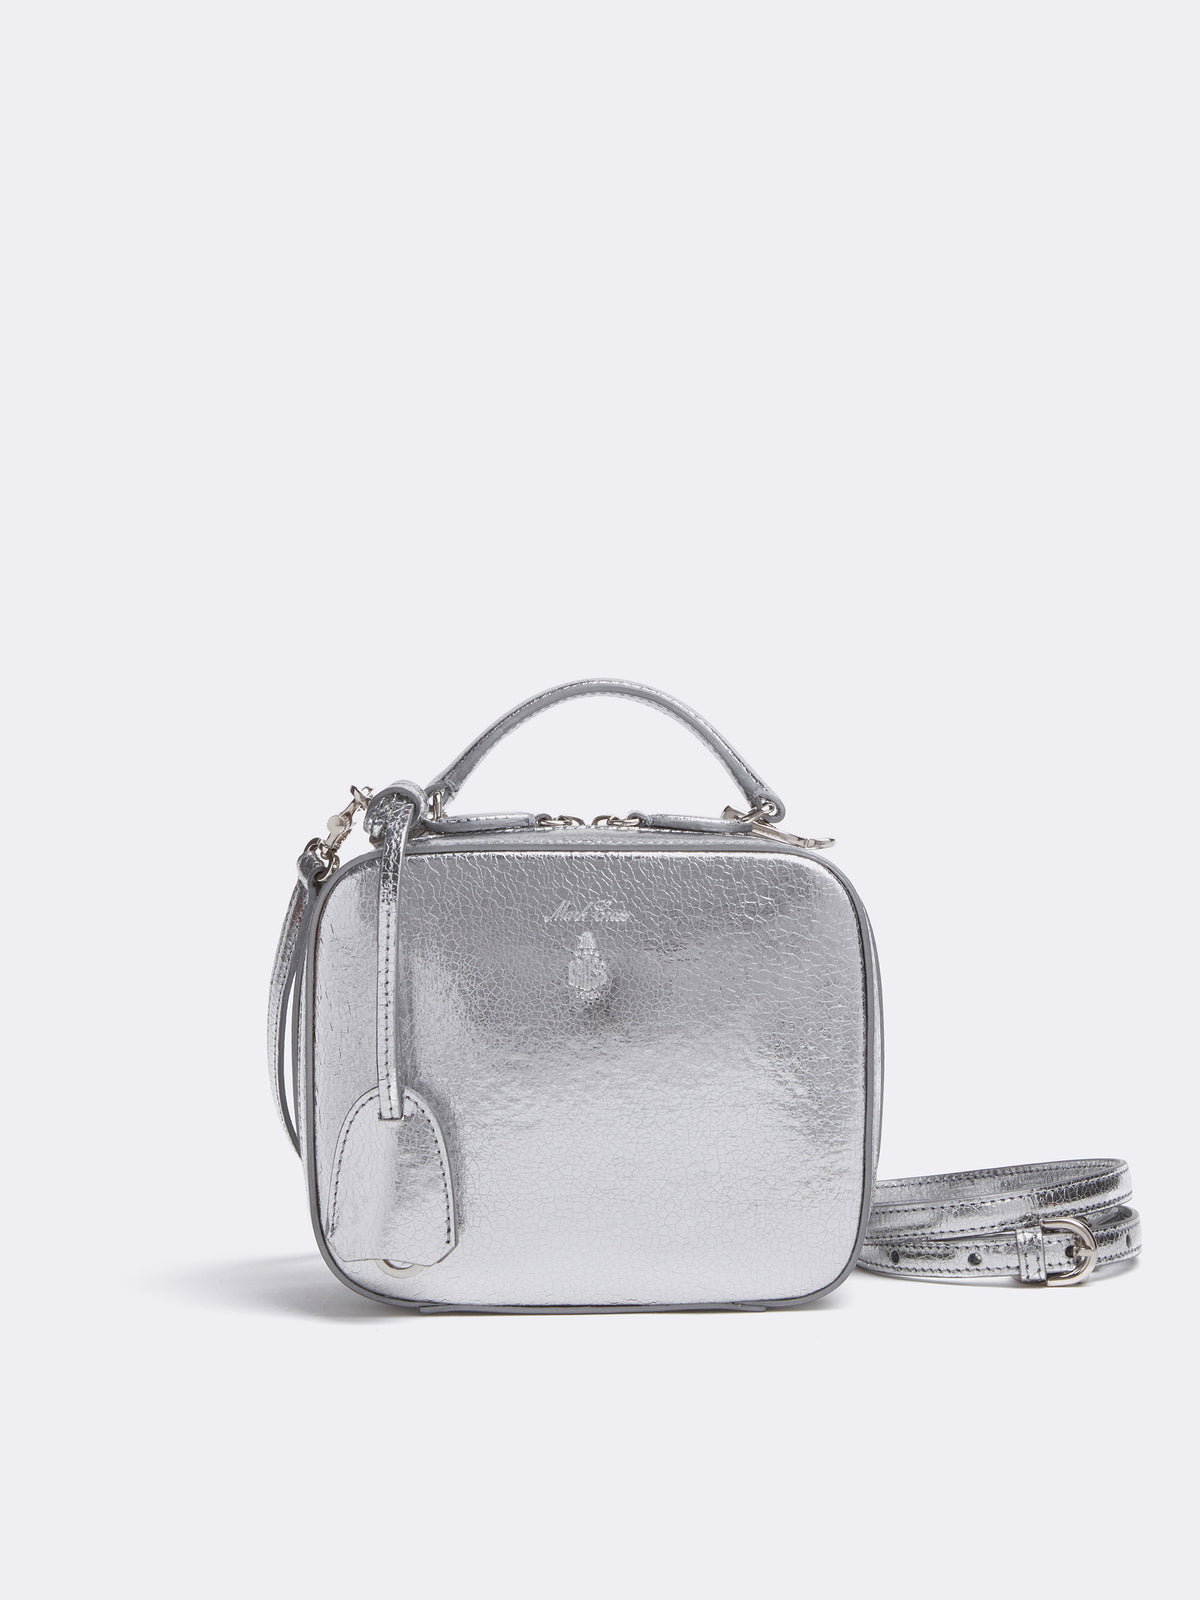 Mark Cross Baby Laura Leather Crossbody Bag Metallic Crackle Silver Front